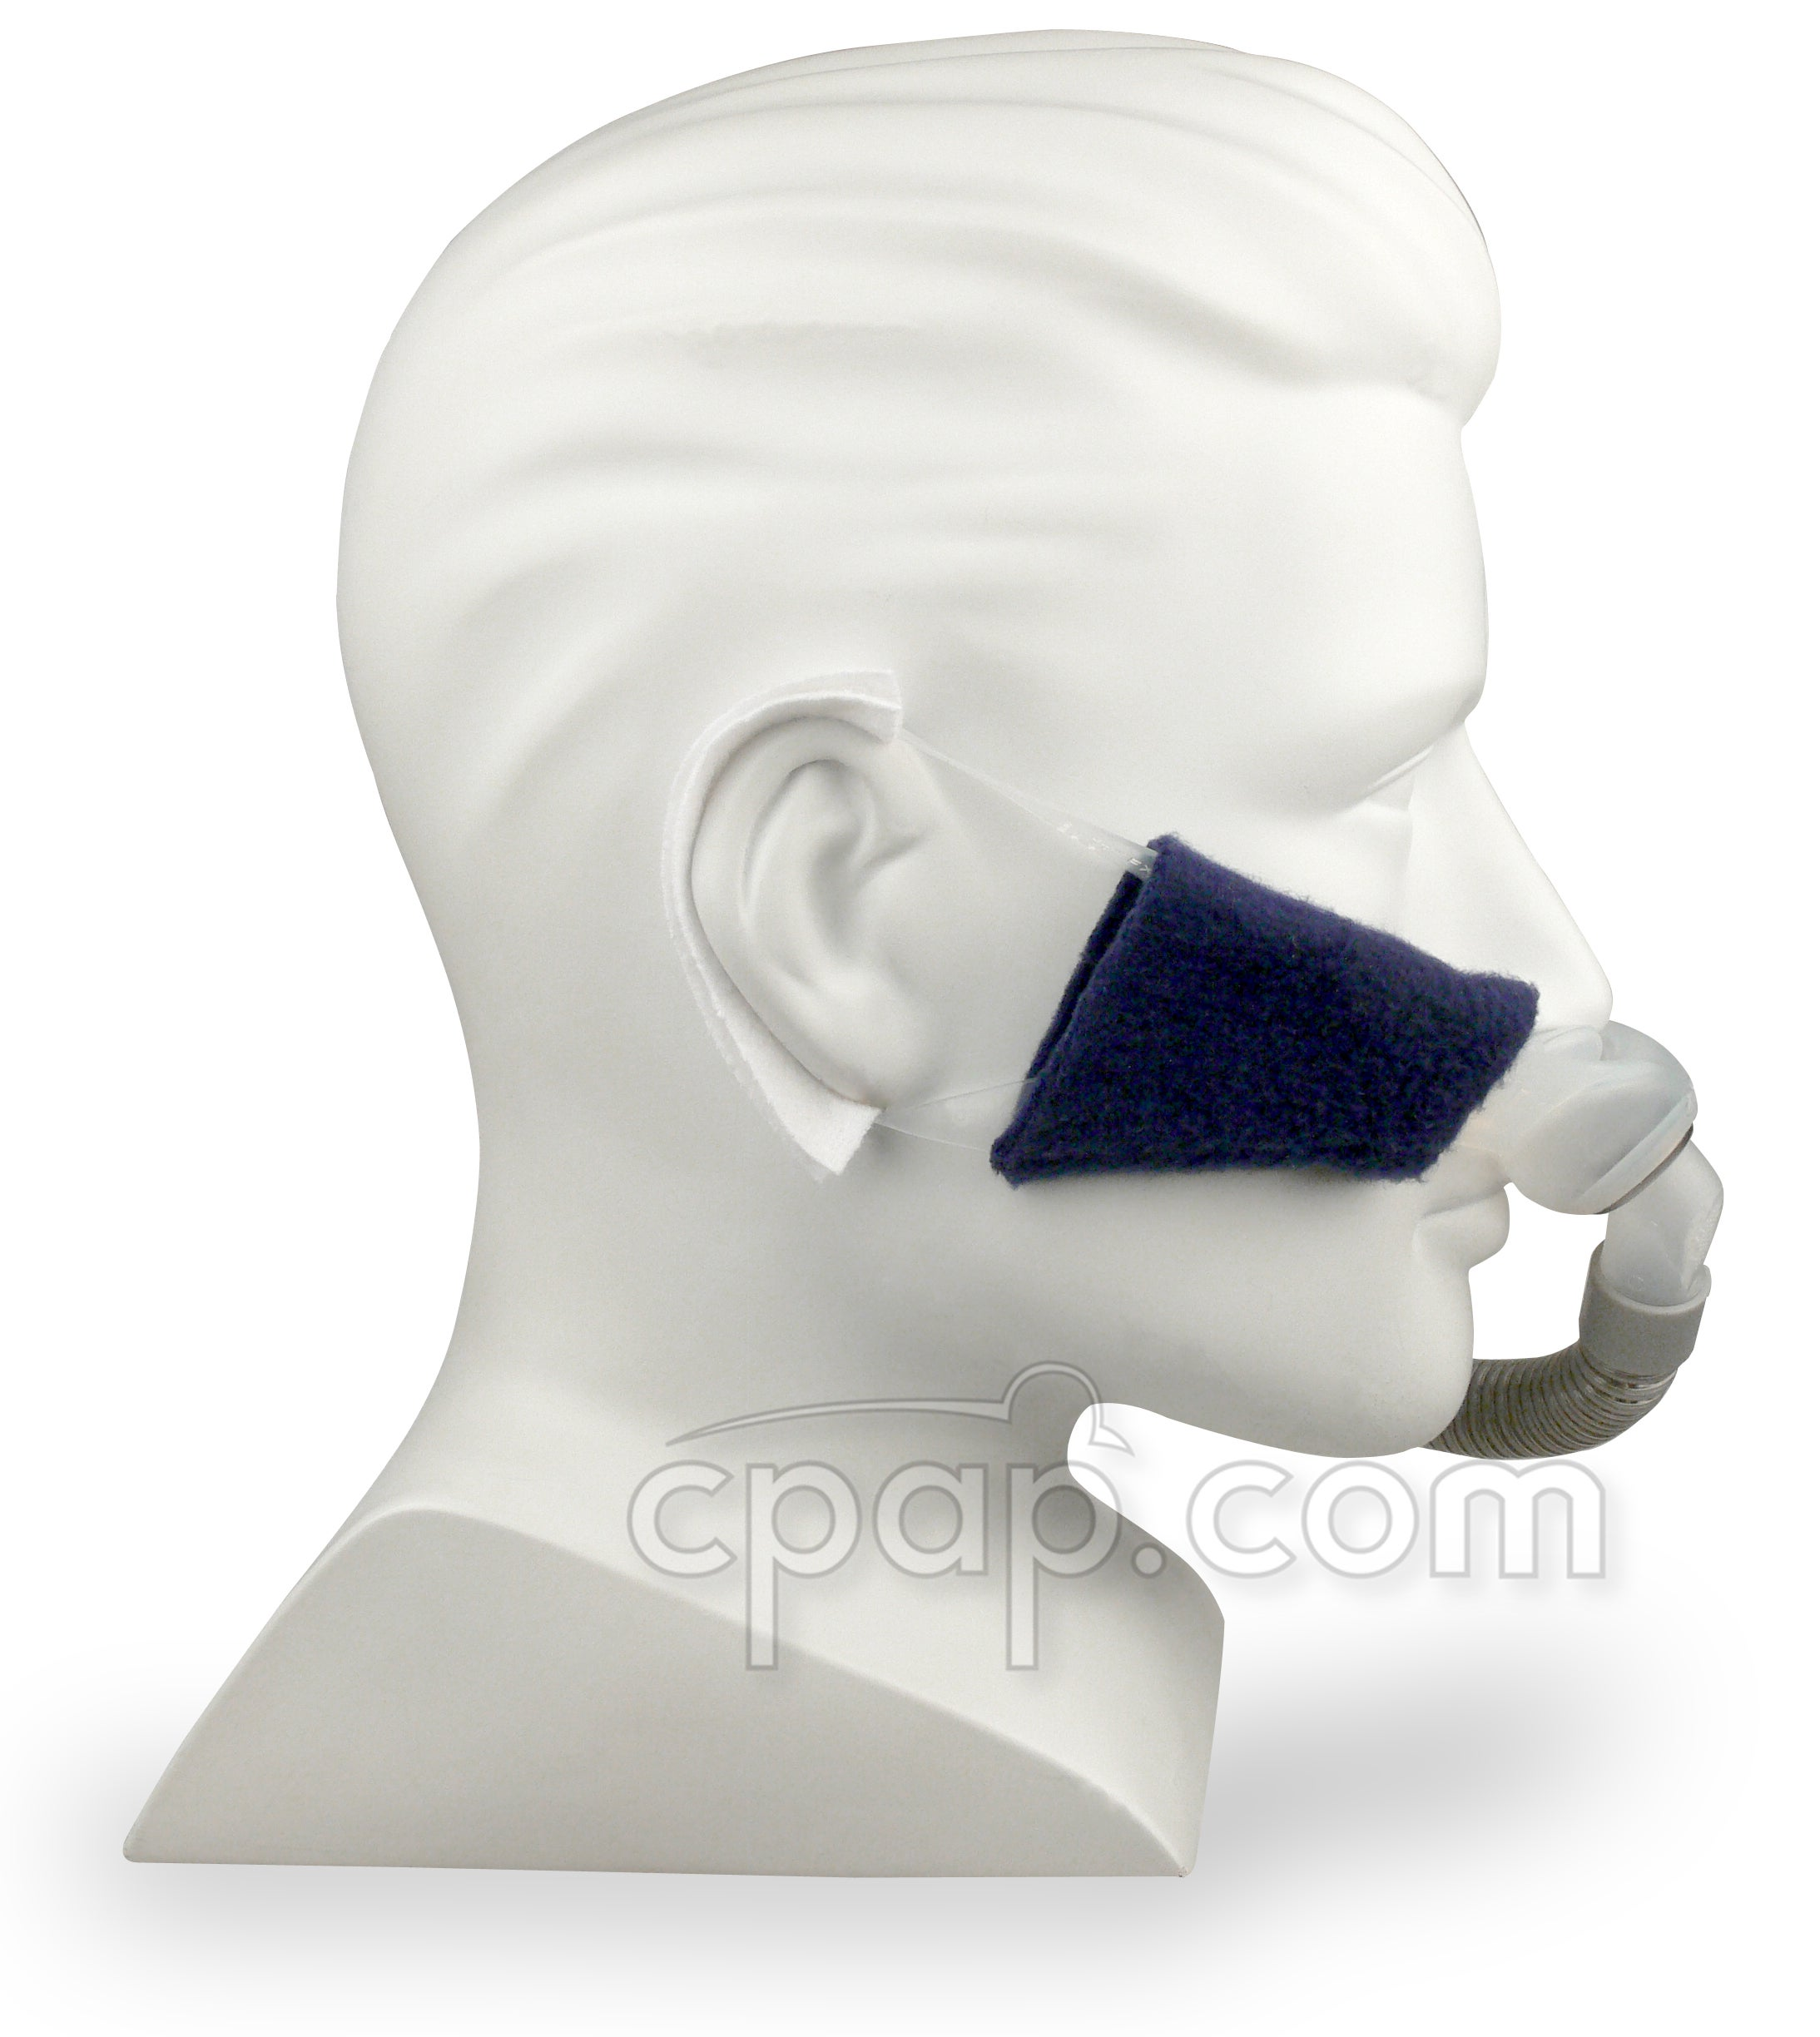 Pad A Cheek Pads for Swift FX™ Bella Loops- Shown on Mannequin (not included)